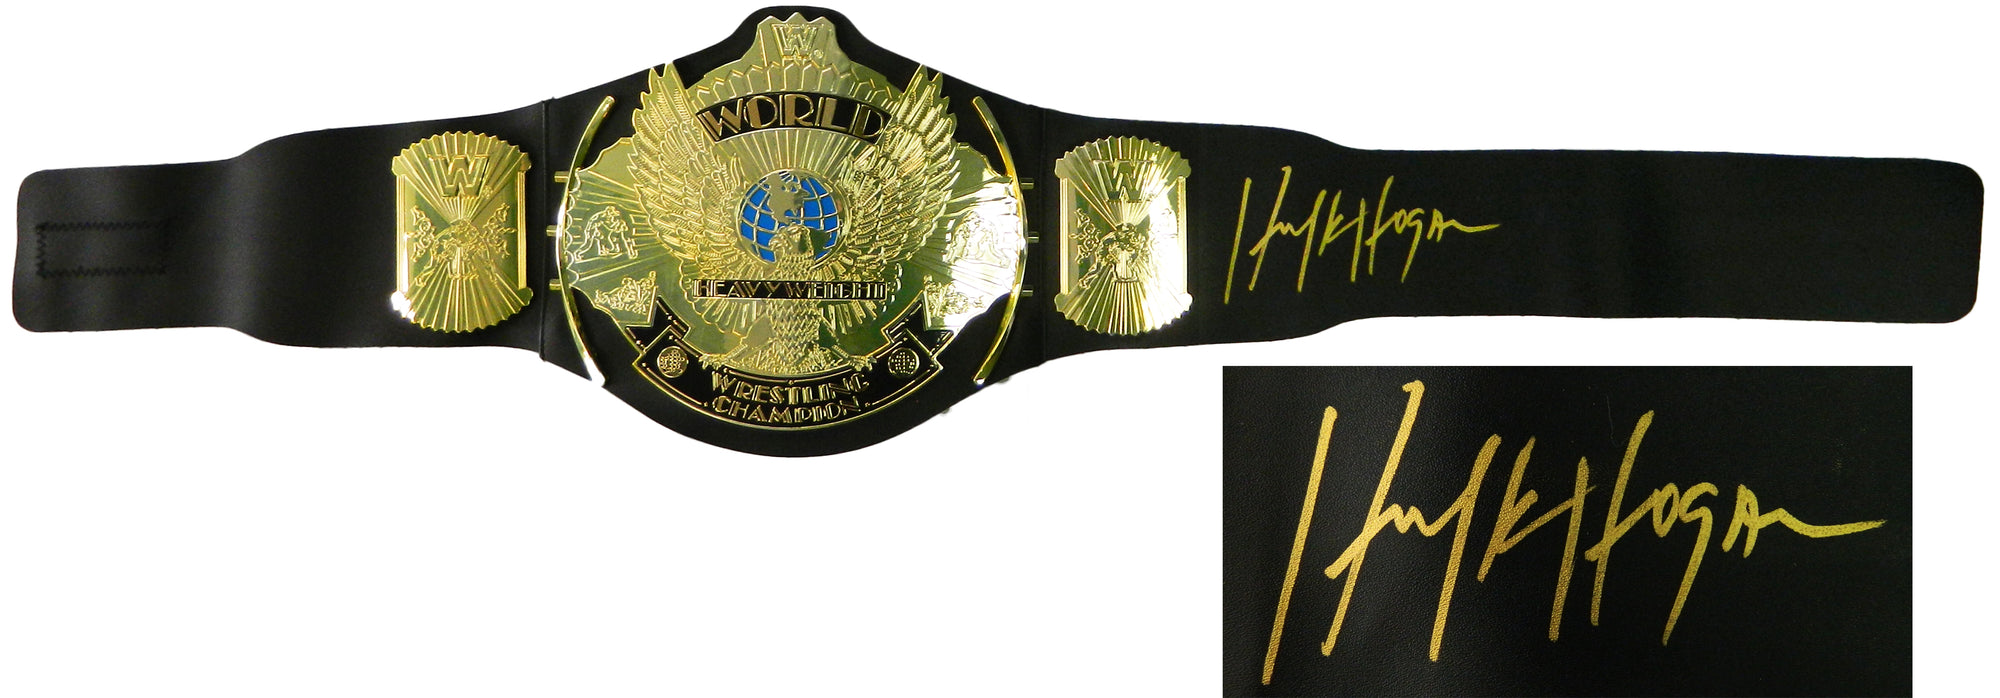 Signed Wrestling Belts